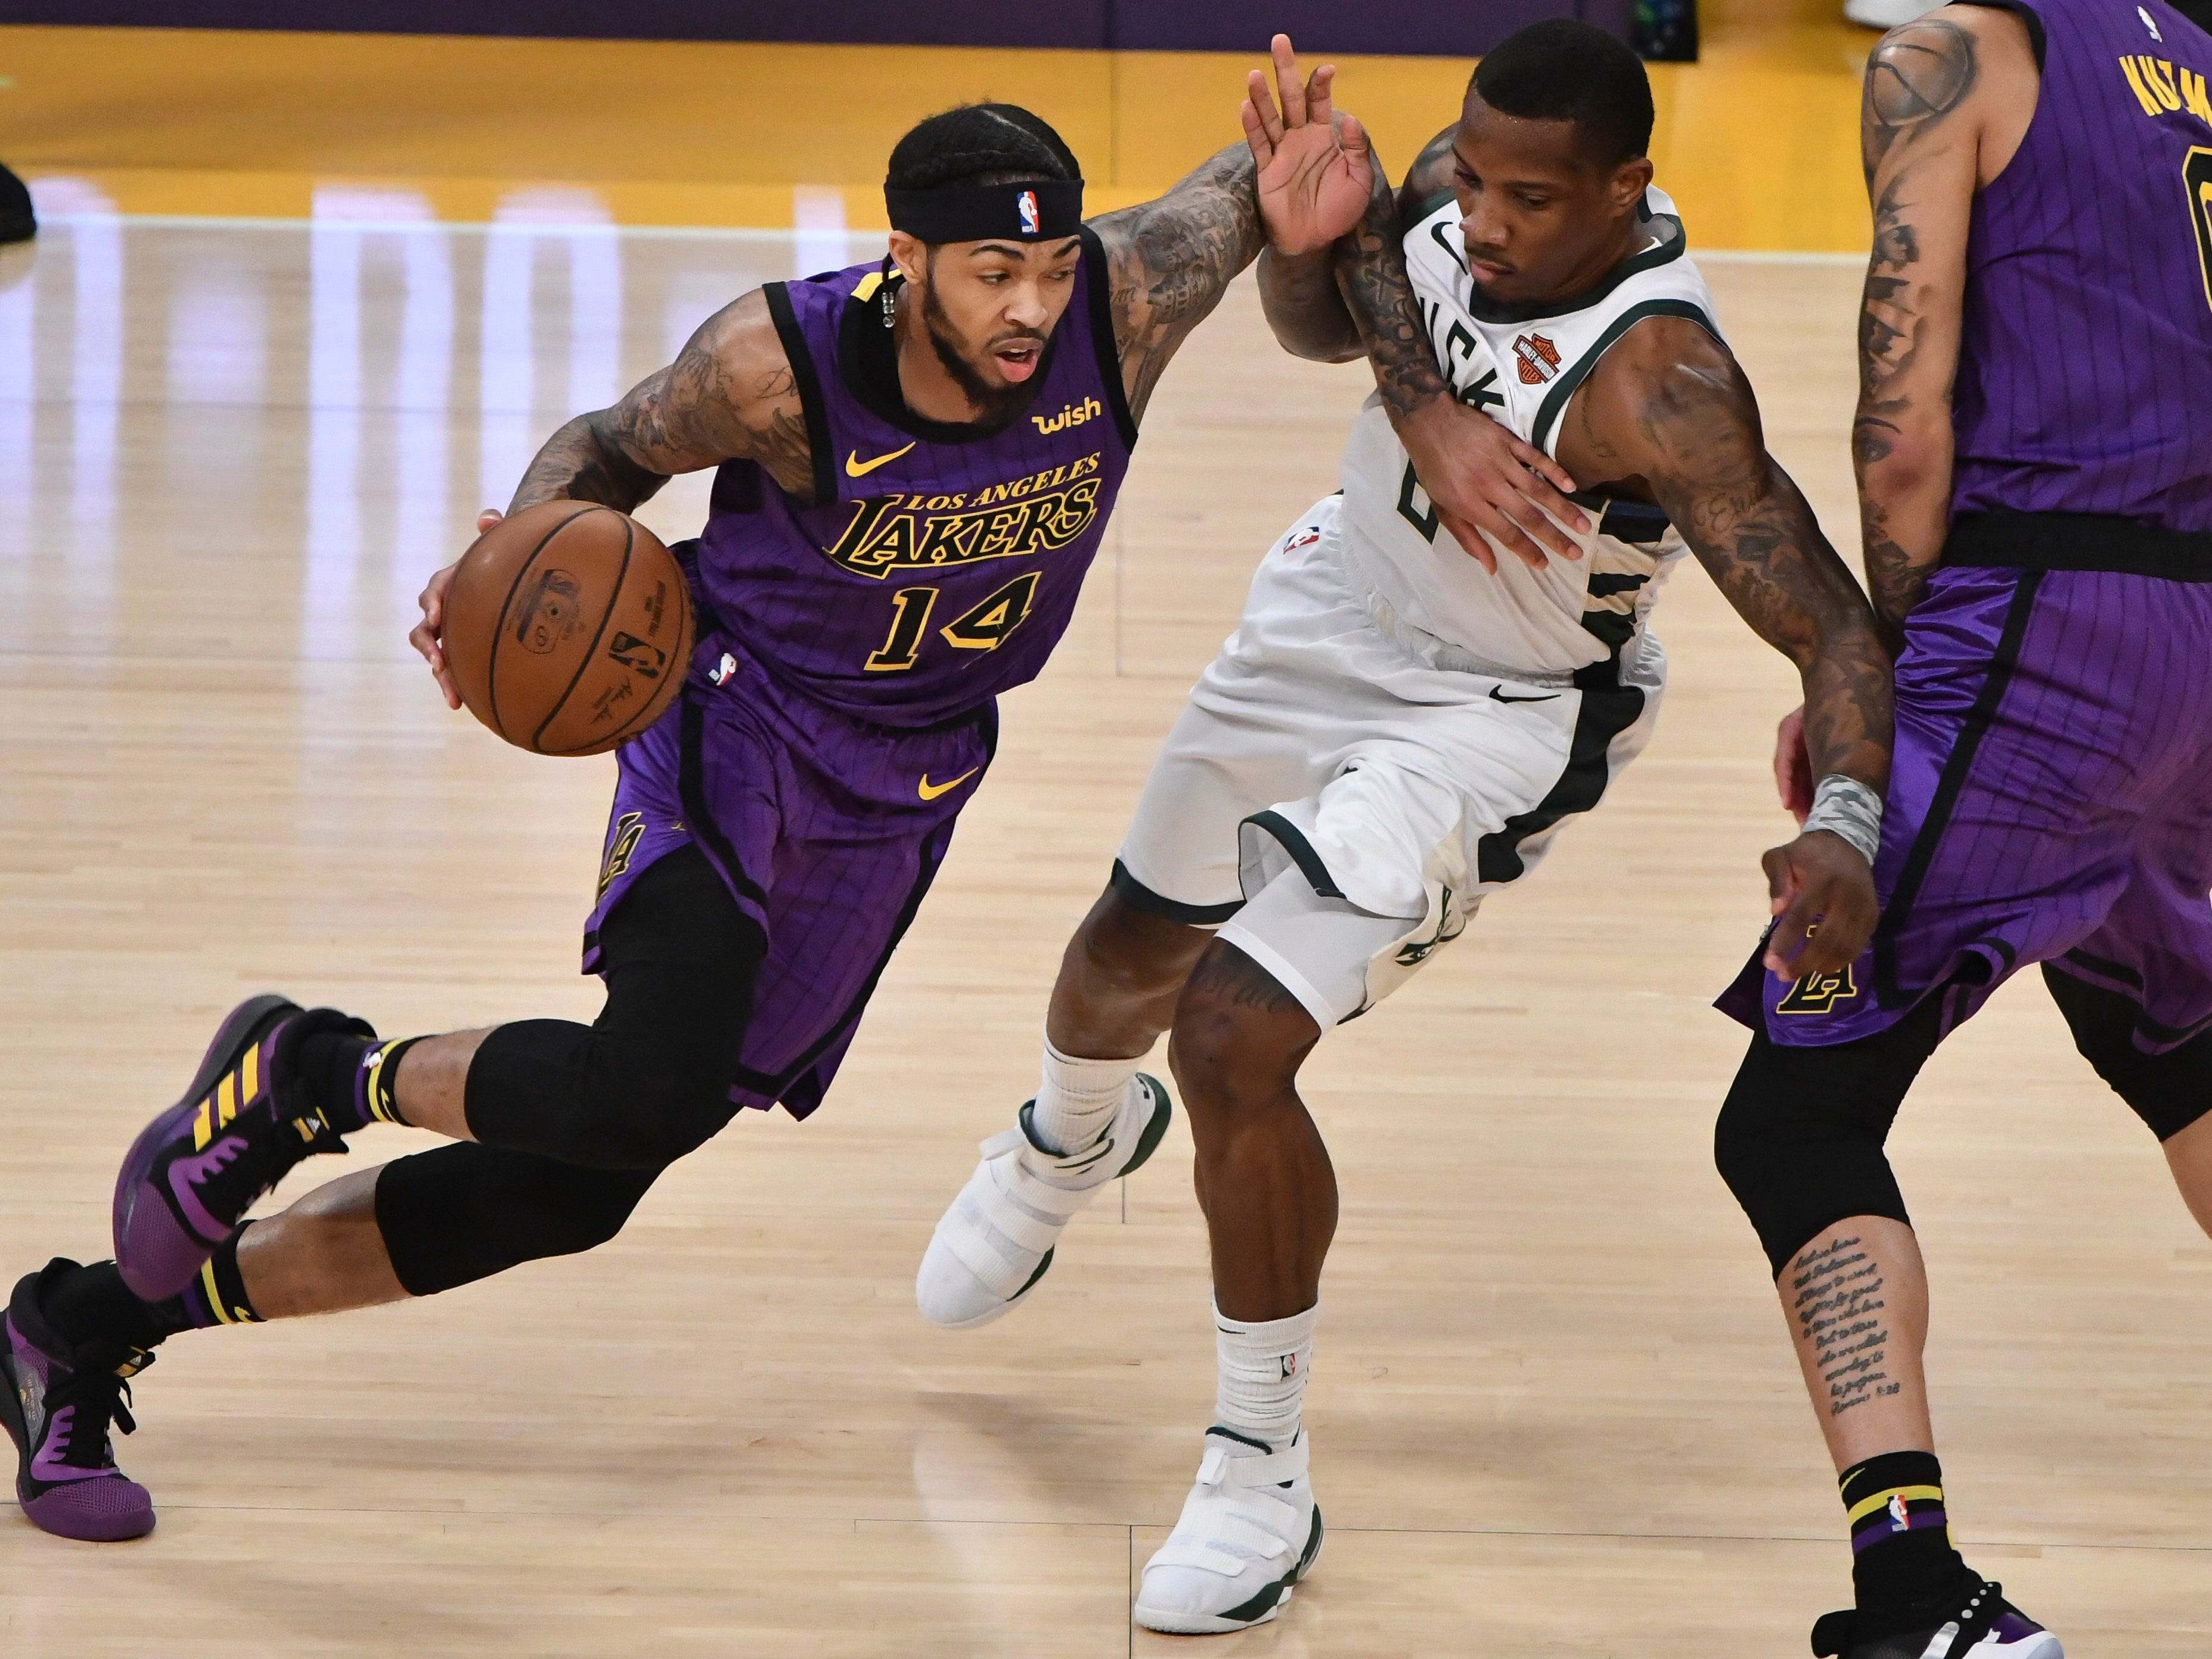 Brandon Ingram was a tough customer for the Bucks to deal with Friday night as he scored 31 points for the Lakers.